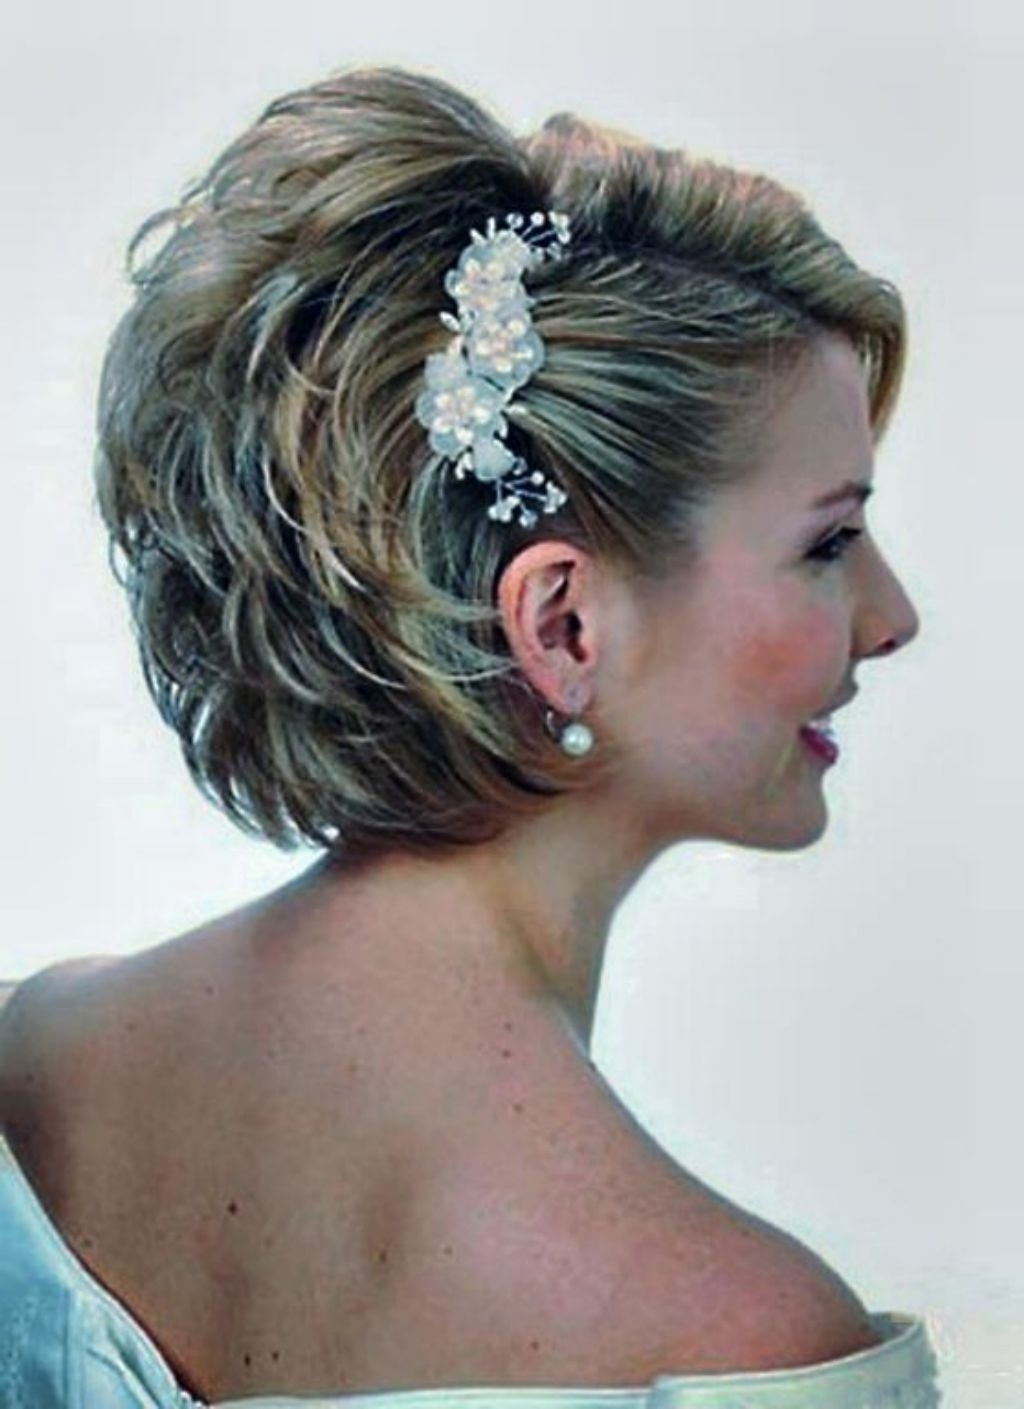 Mother Of The Groom Hairstyles Images | Hair For Wedding | Pinterest With Regard To Mother Of The Bride Updo Hairstyles For Short Hair (View 8 of 15)